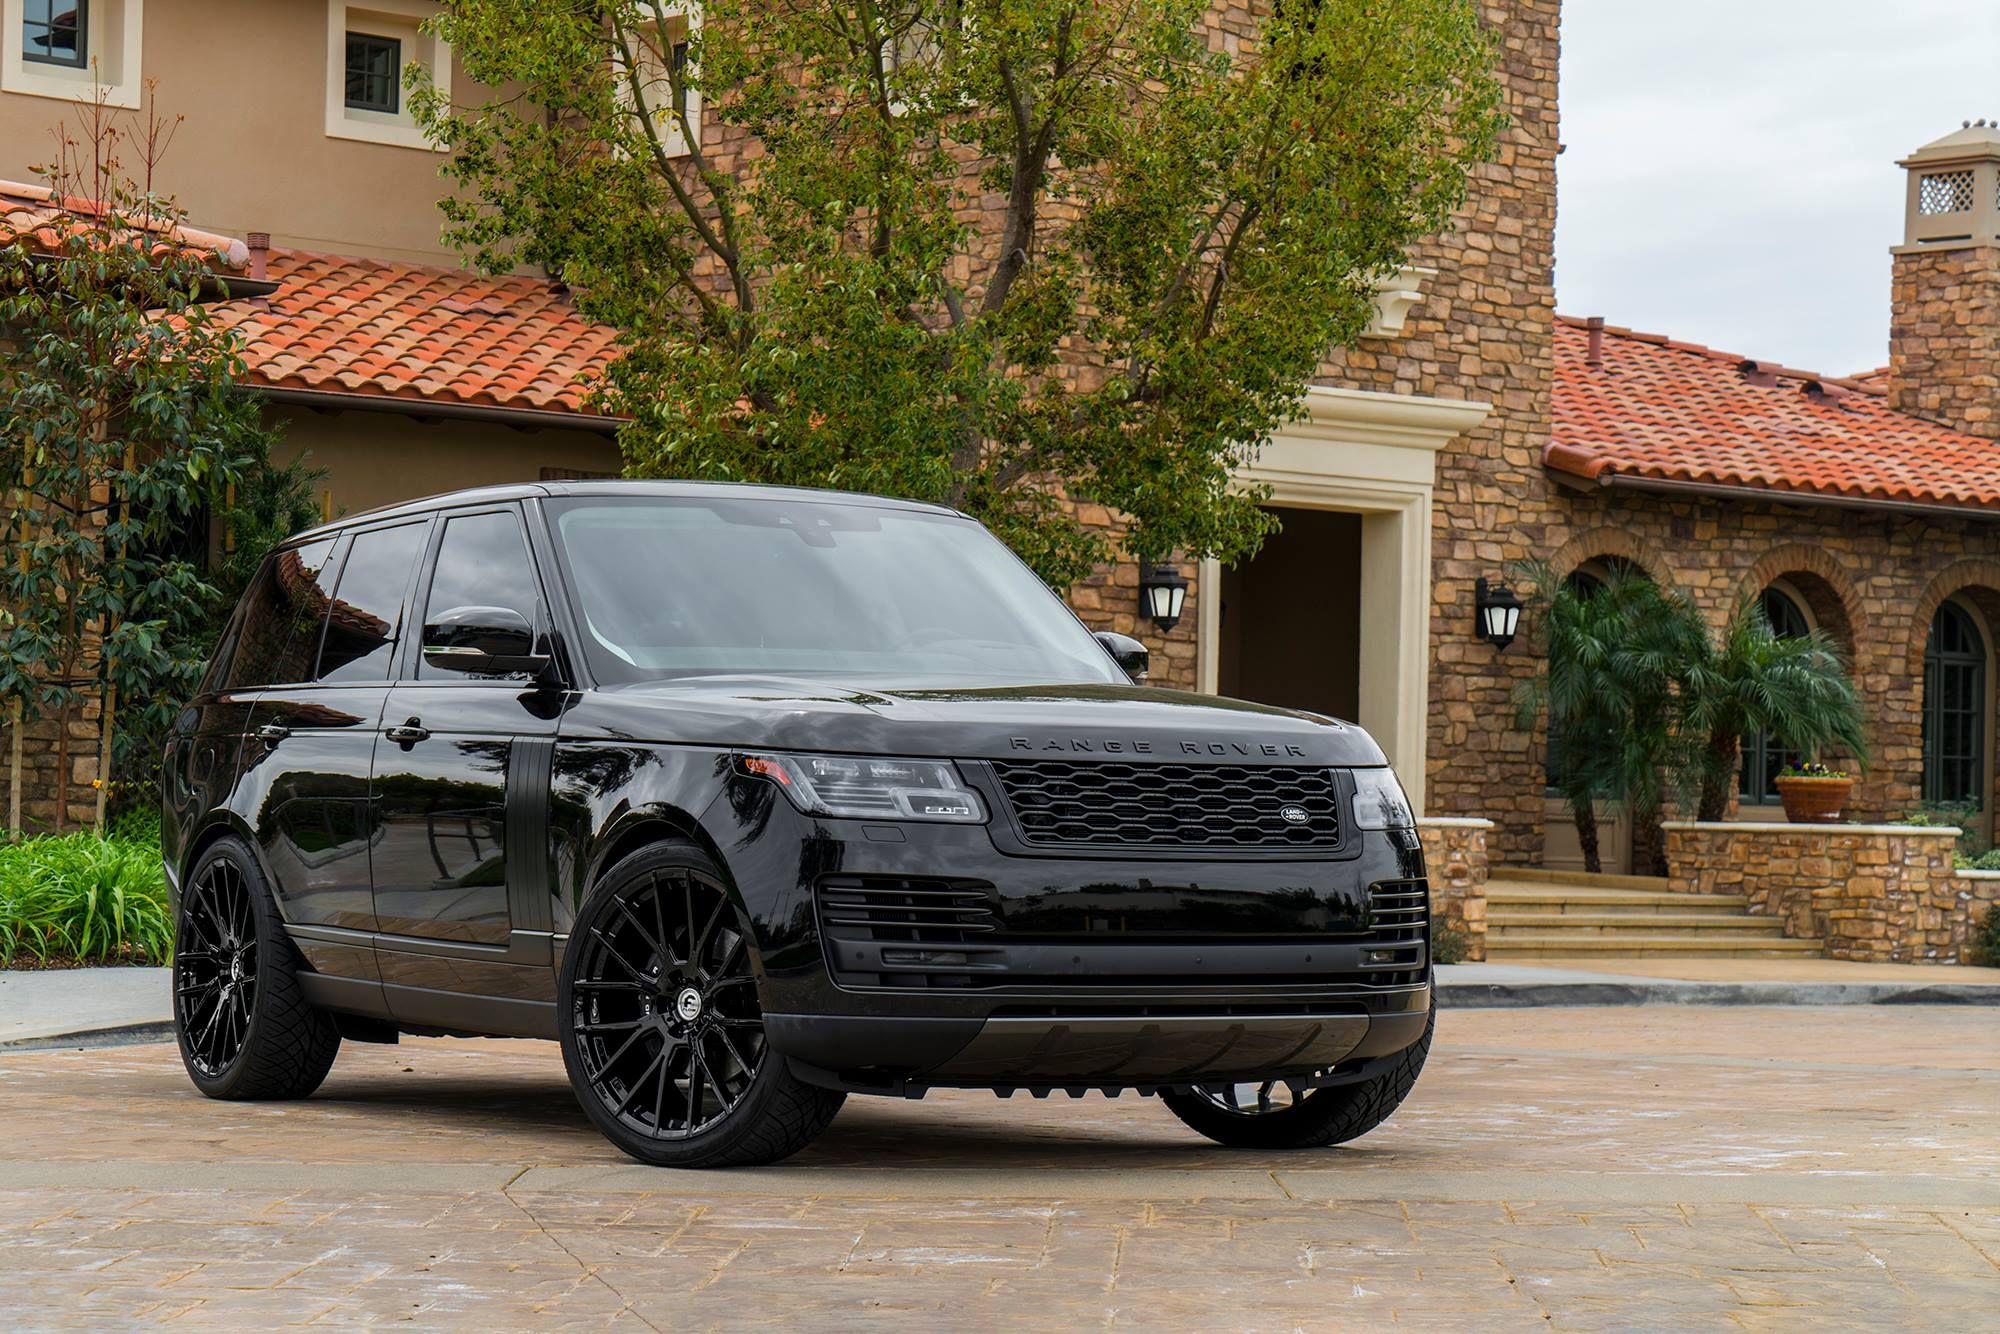 Blending in and standing out blacked out Range Rover on Forgiato